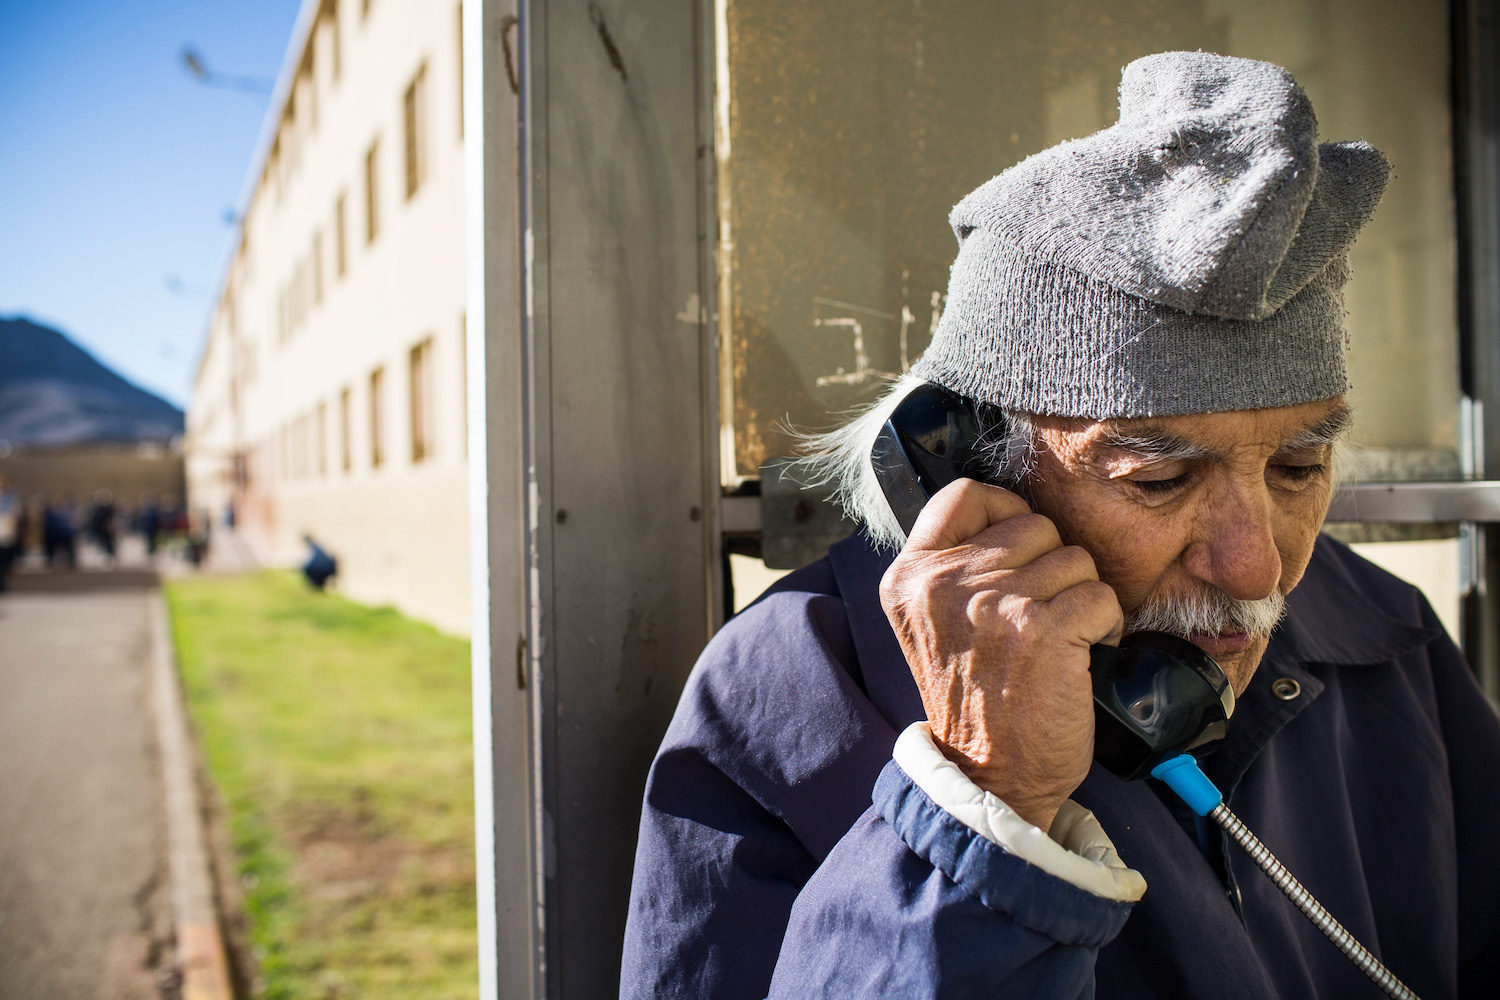 Prison inmate calling companies - Prison Phone Company Securus Denies Violating Inmate Rights With Call Recordings Inverse